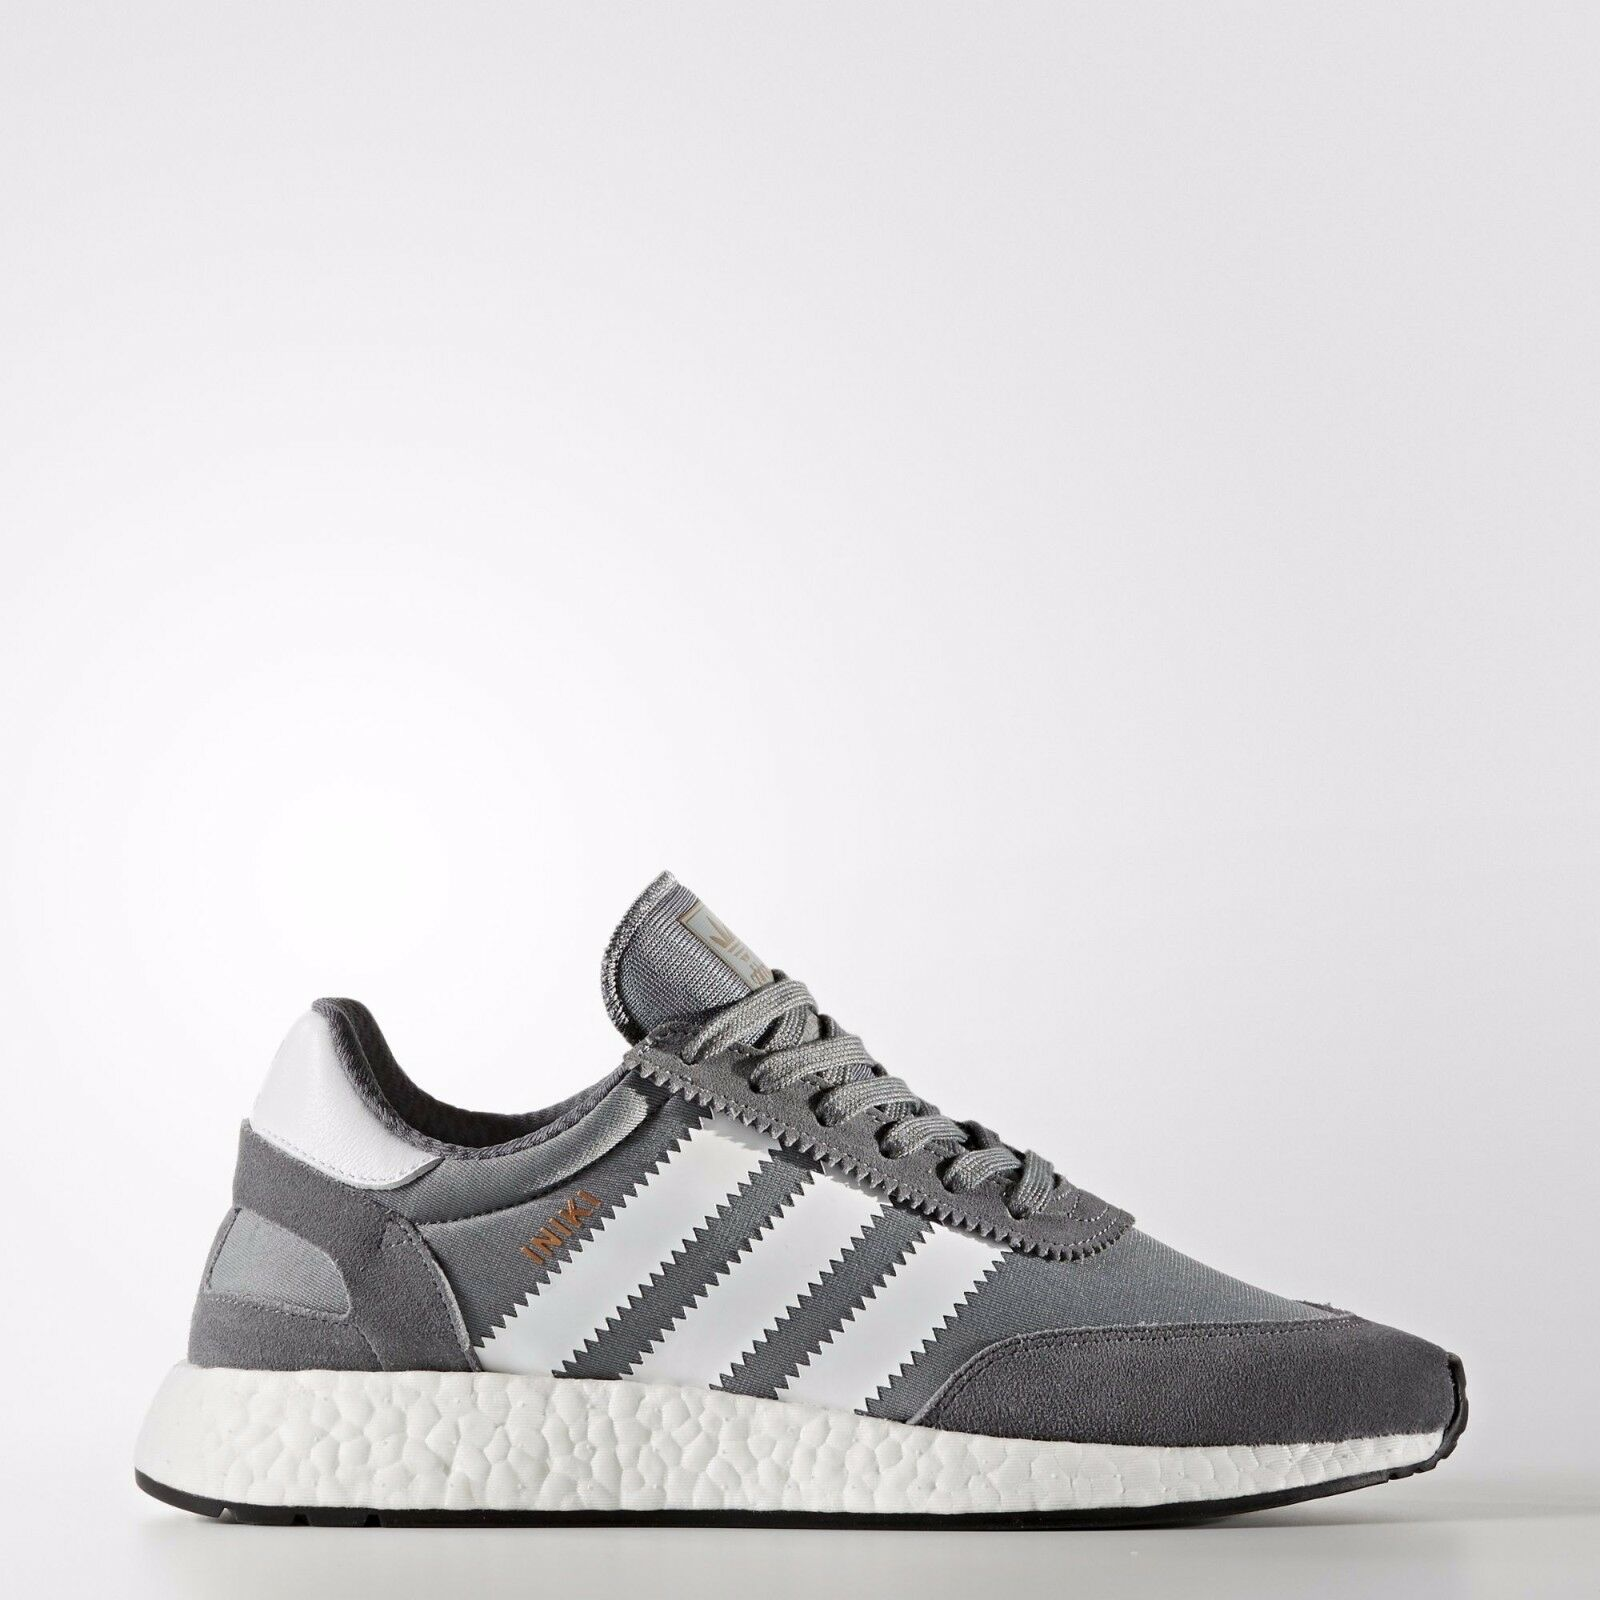 Adidas INIKI Runner size size size 9.5. Grey White Black . BB2089. nmd ultra boost pk 5faac0